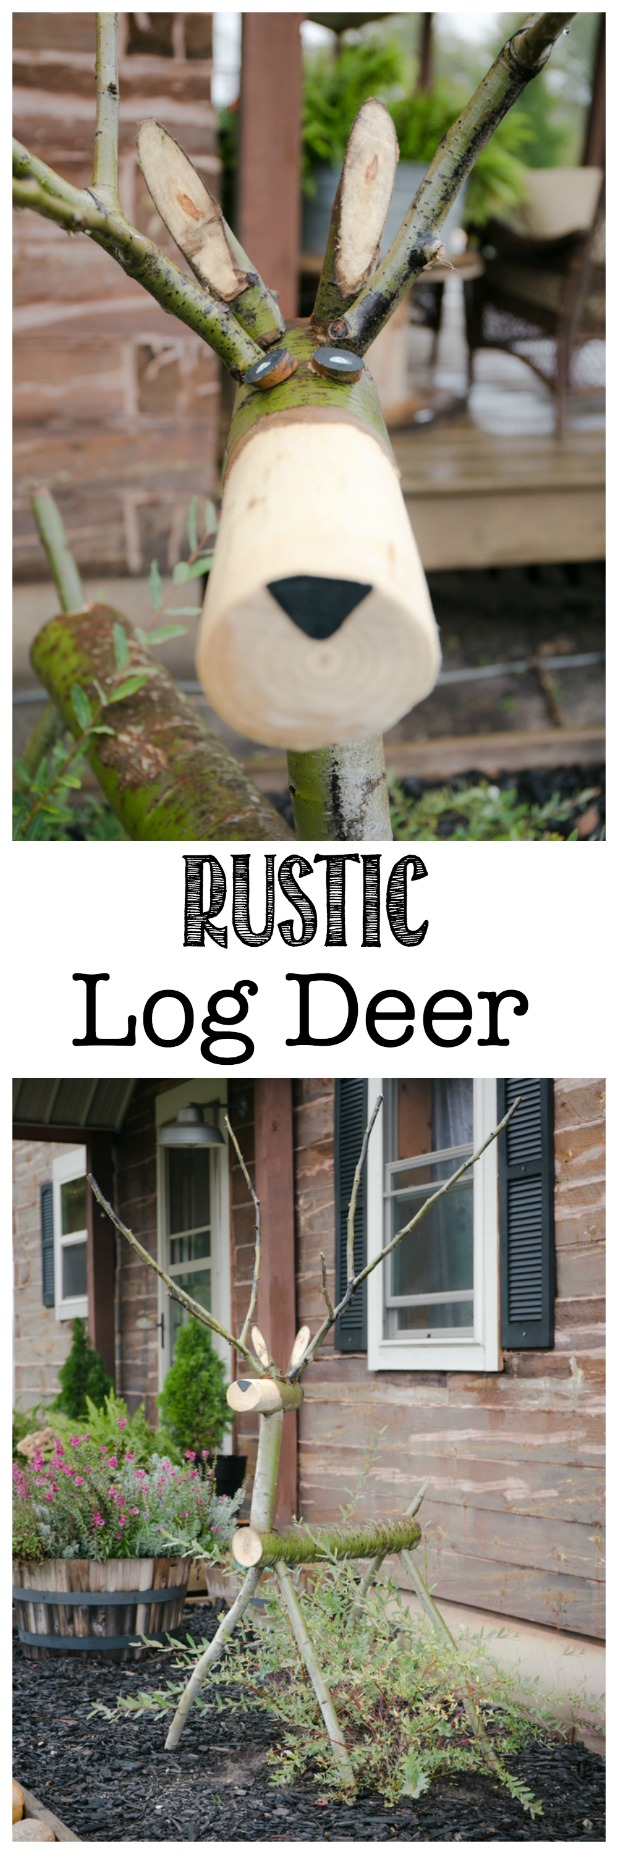 Rustic Log Deer